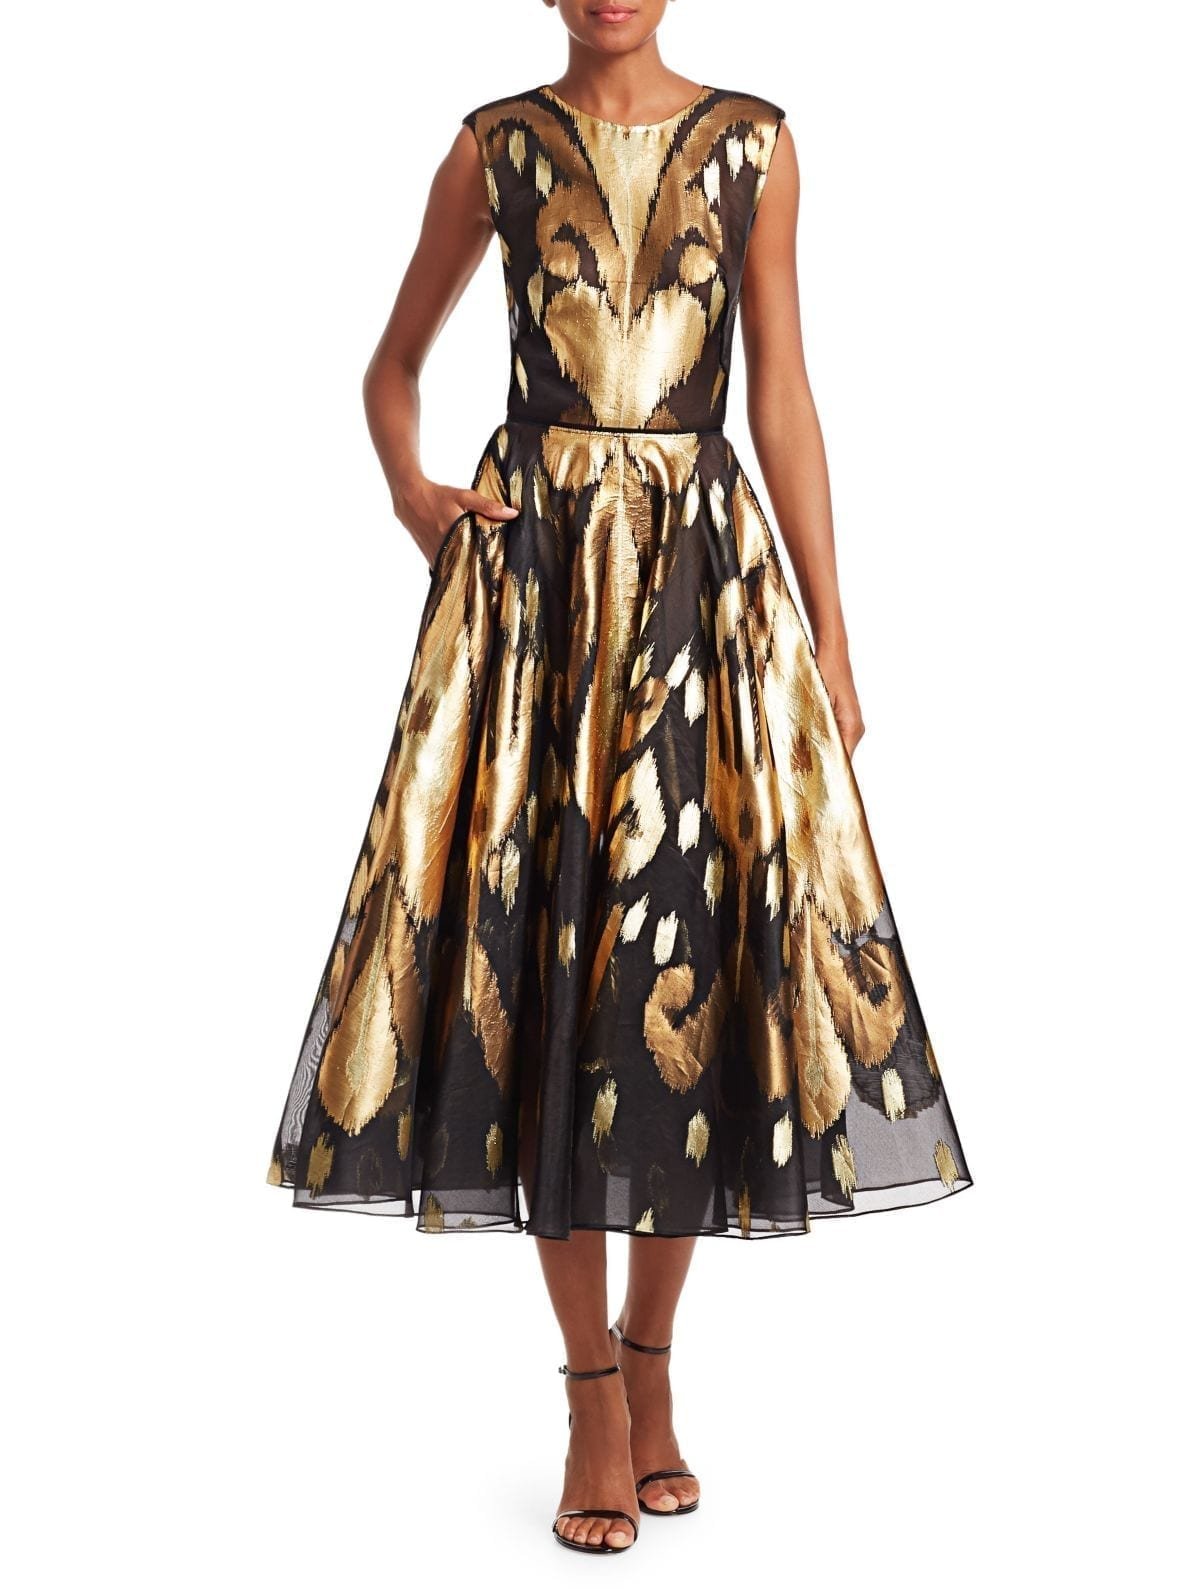 OSCAR DE LA RENTA Metallic Ikat A-Line Black / Gold Dress